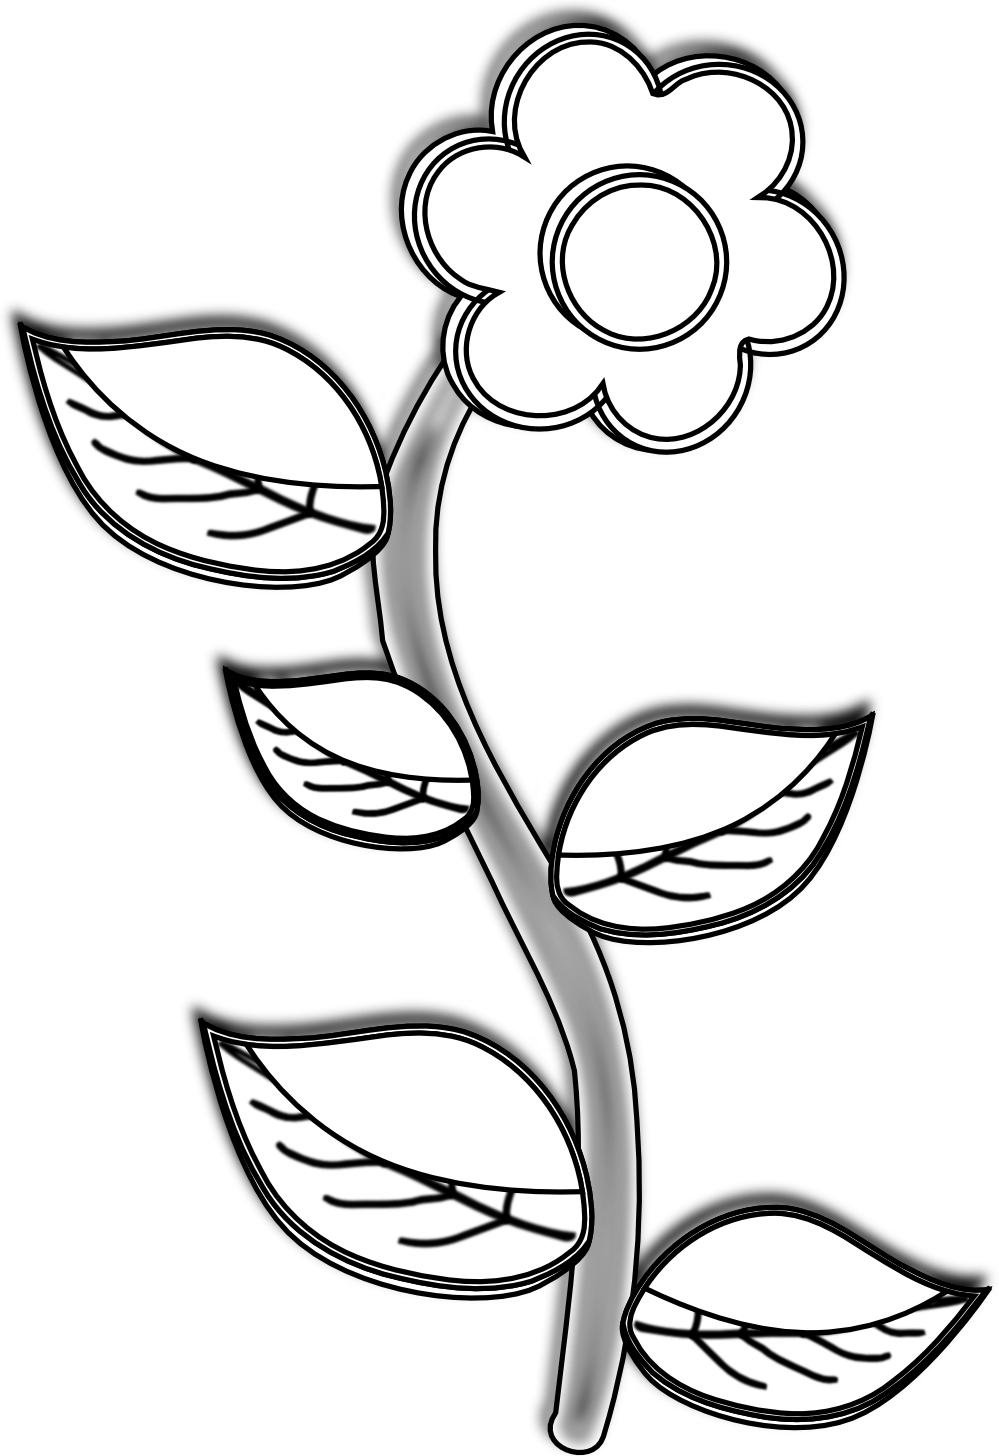 Simple black and white flower clipart clipart black and white stock Jasmine Flower Drawing at GetDrawings.com | Free for personal use ... clipart black and white stock